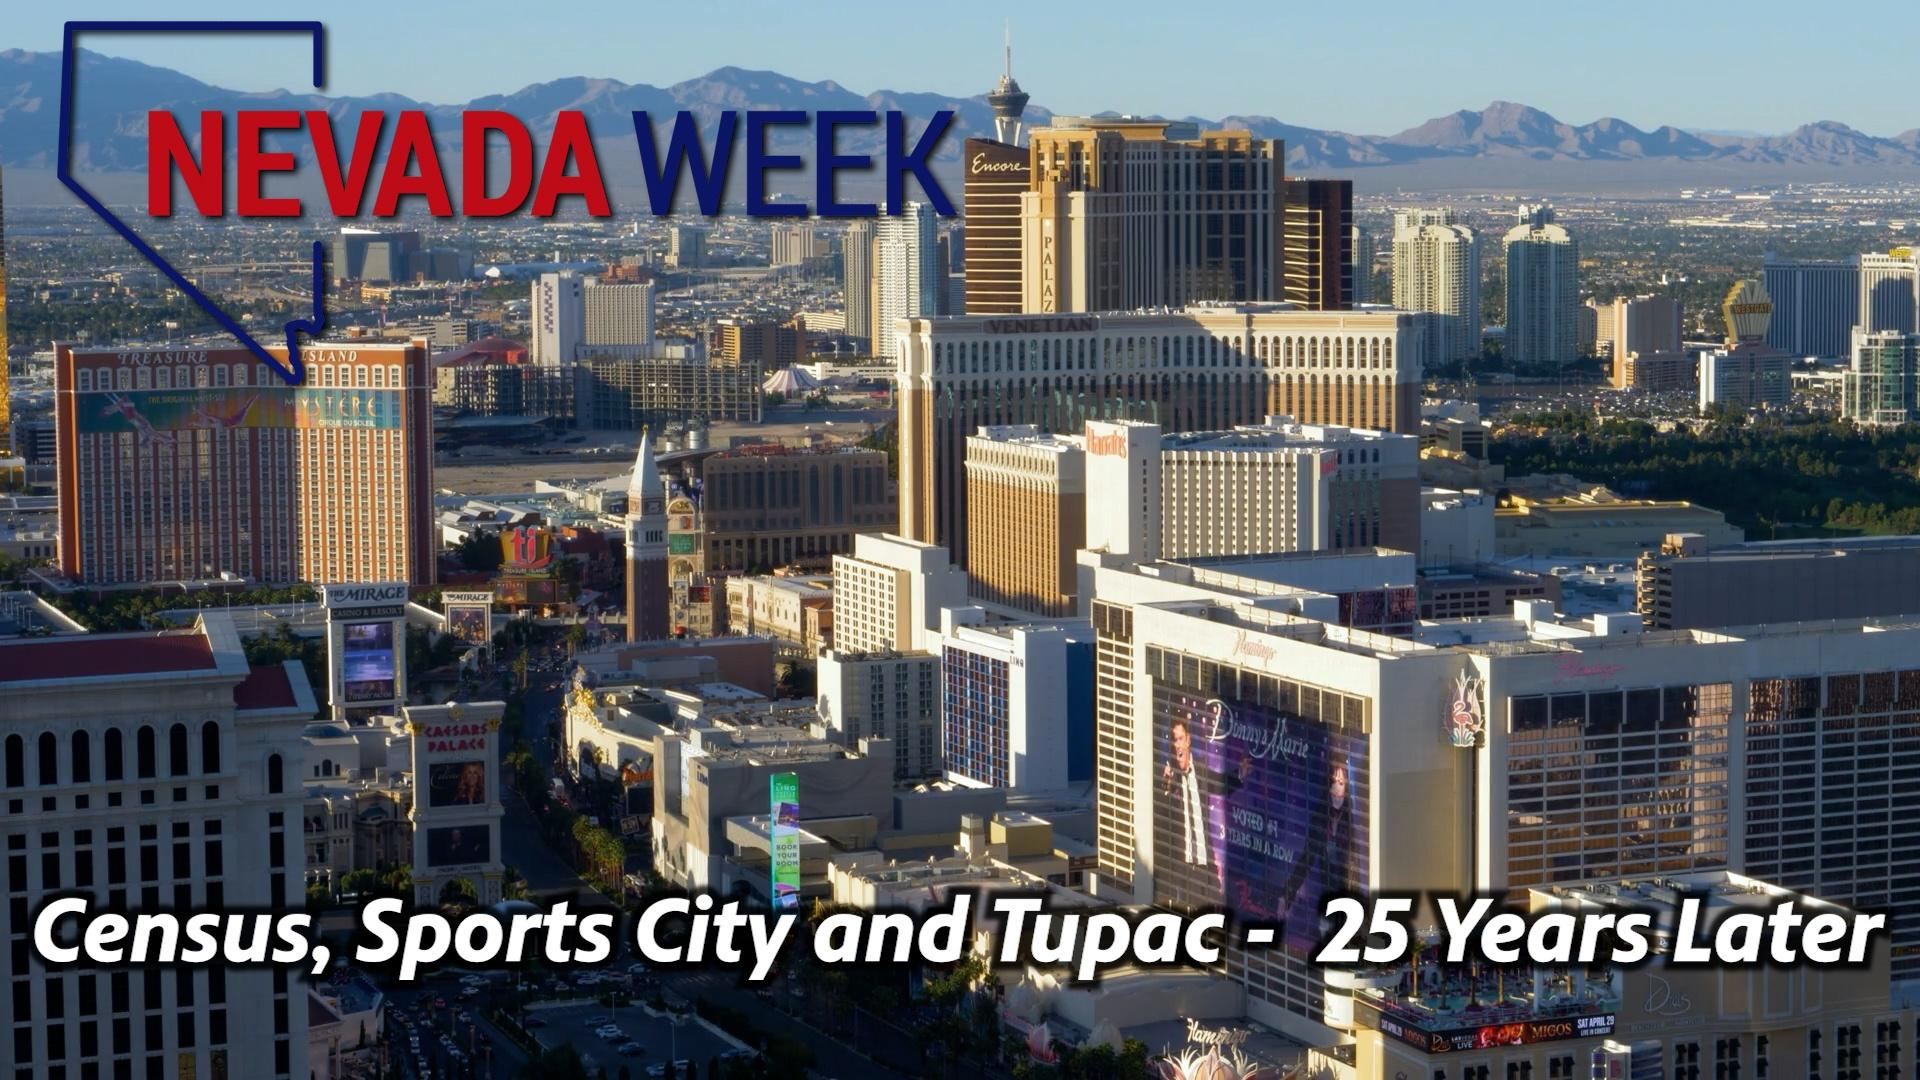 Census, Sports City and Tupac - 25 Years Later   Nevada Week